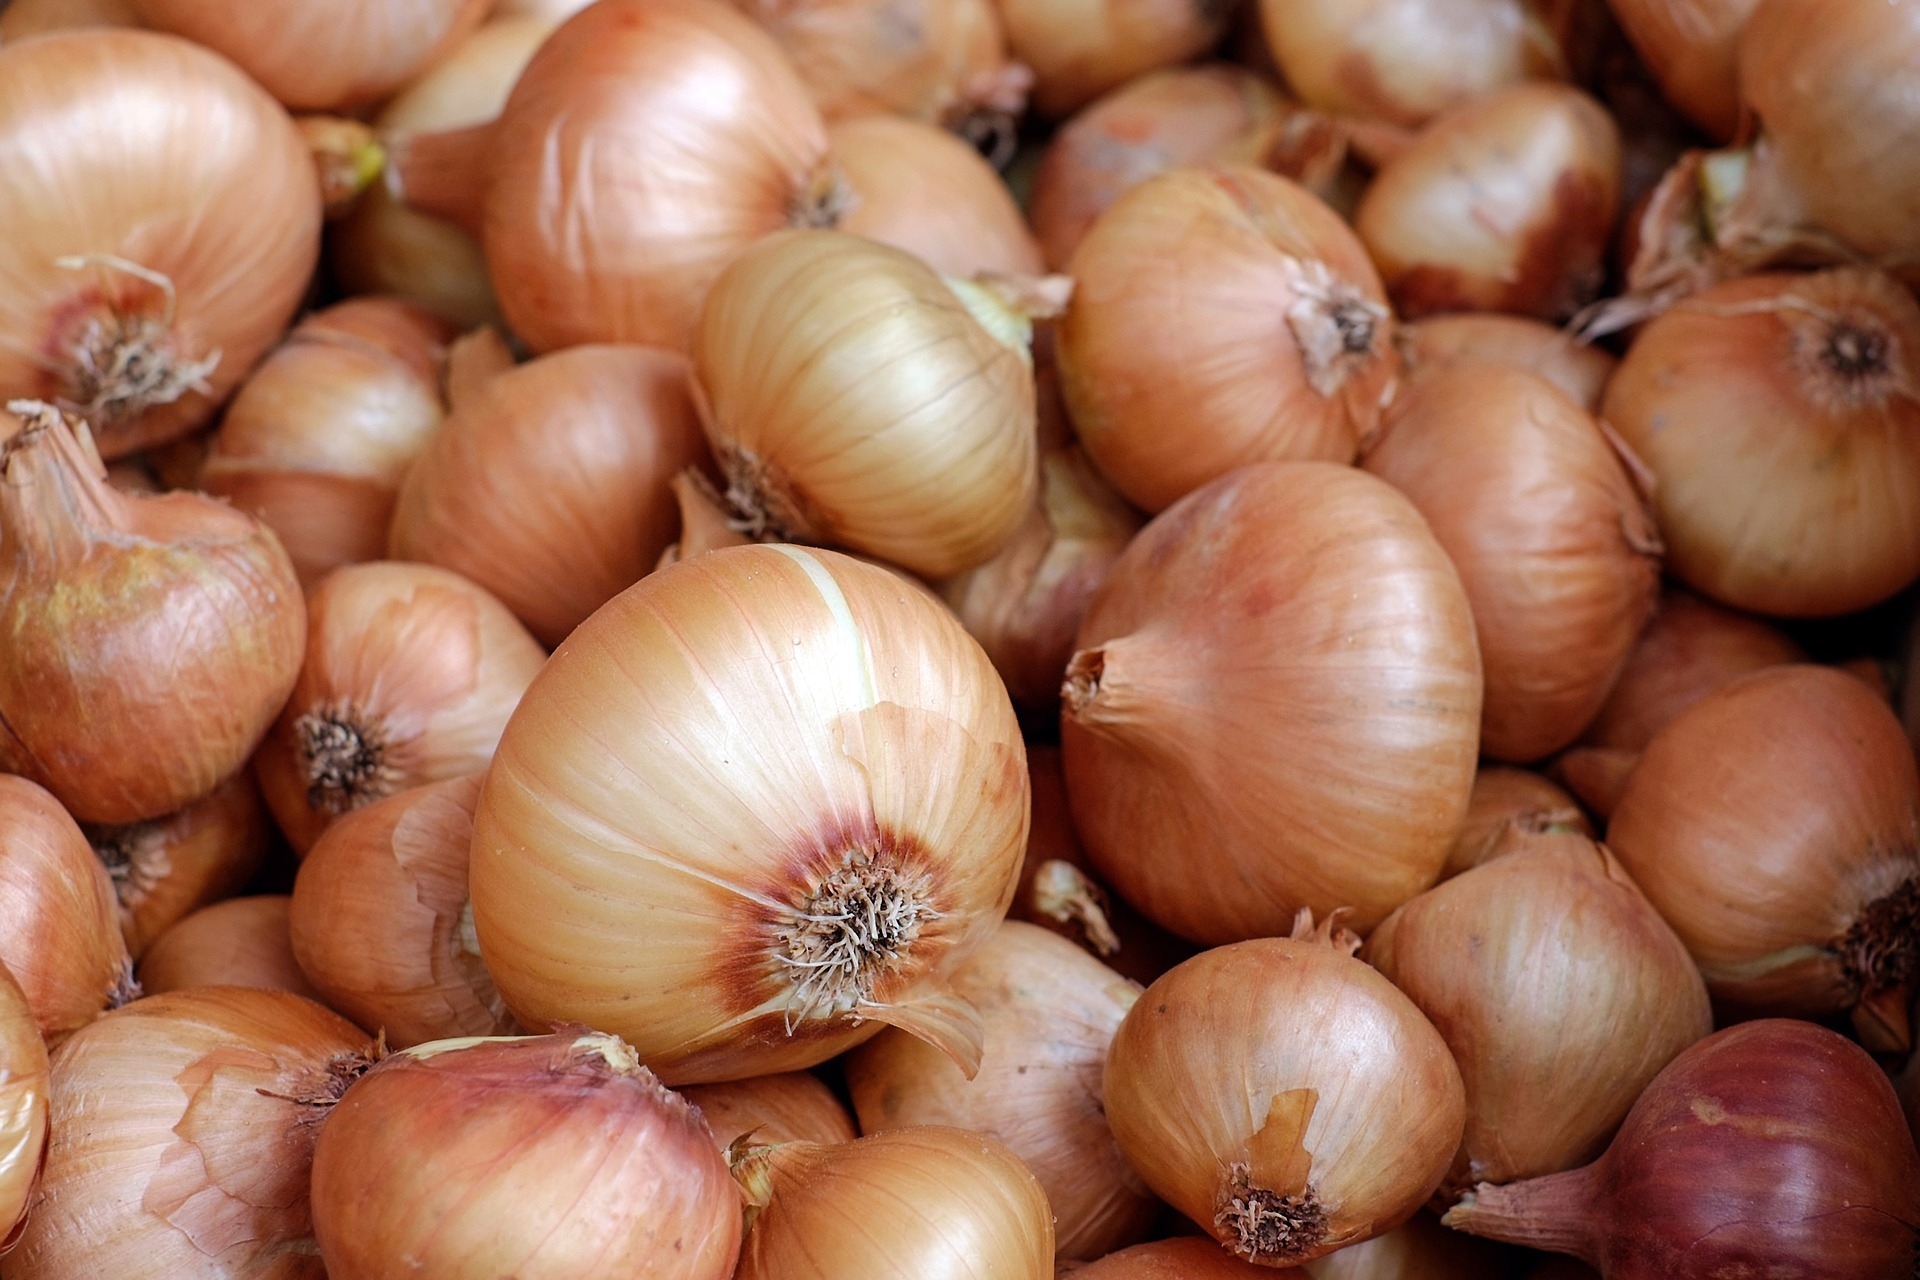 Onions: Planting, Growing, and Harvesting Onions | The Old ...